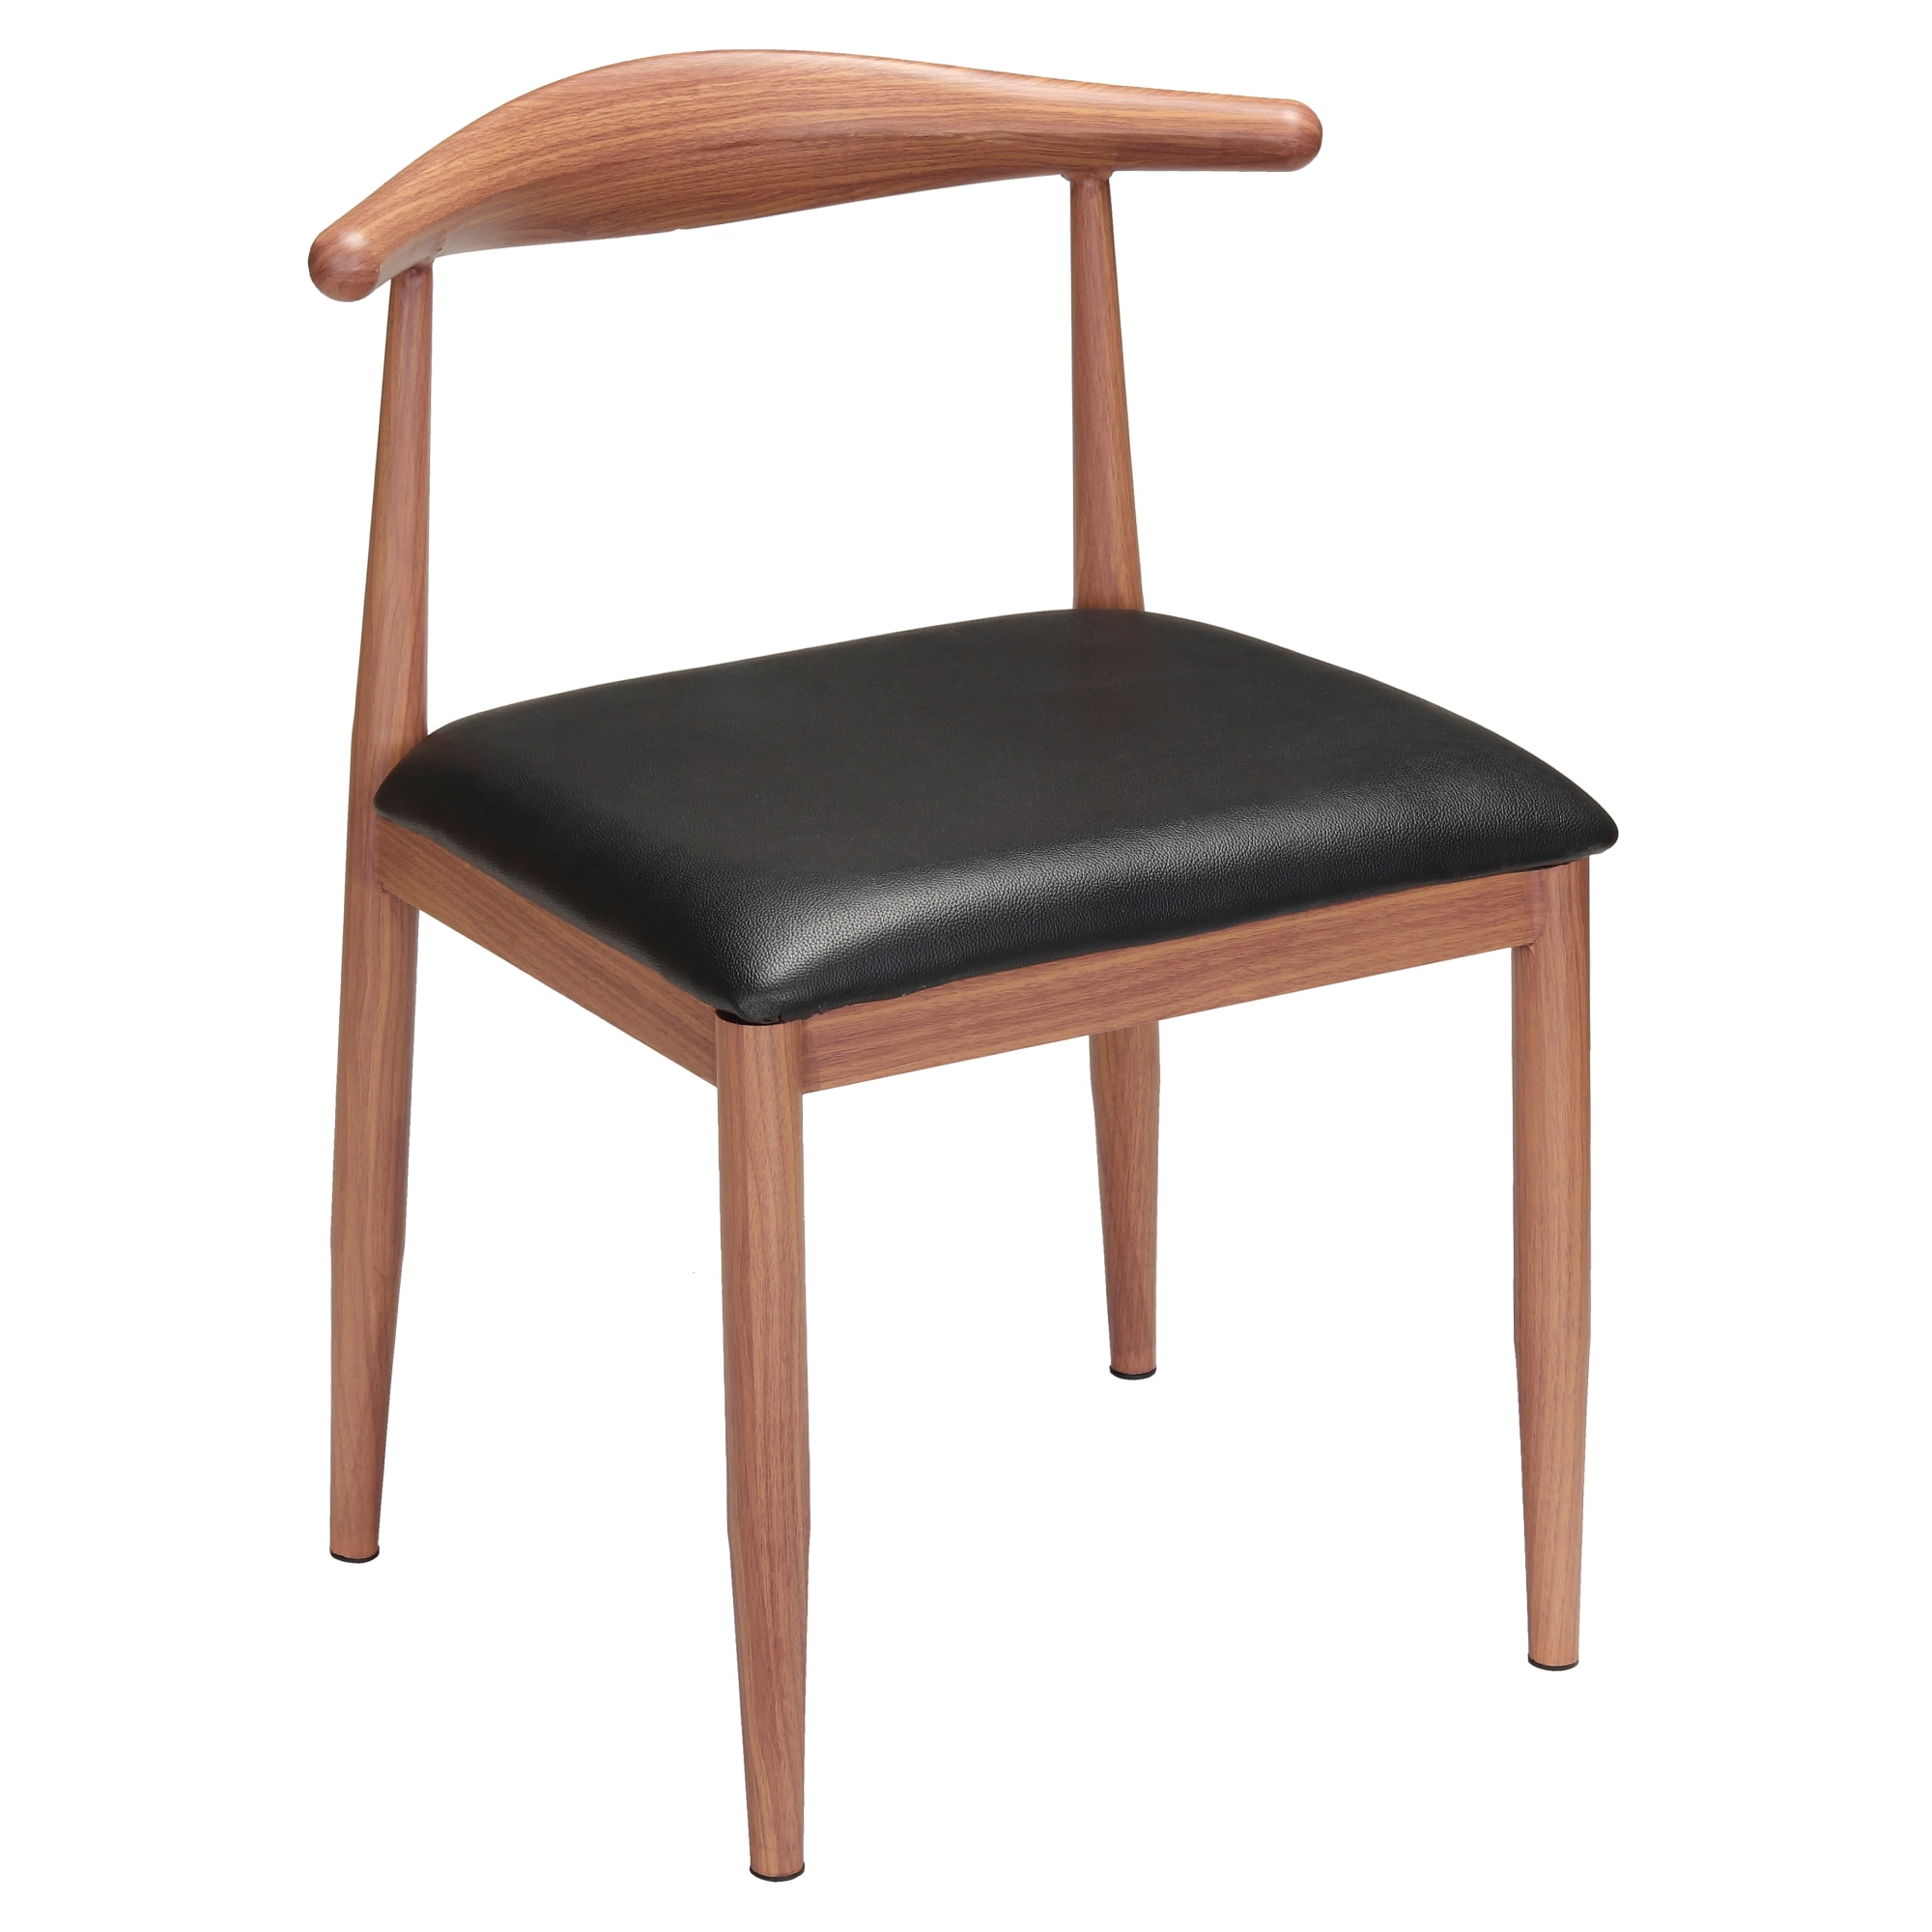 Wood Grain Metal Chair in Walnut Finish with Black Vinyl Seat with Wood Grain Metal Chair in Walnut Finish with Black Vinyl Seat